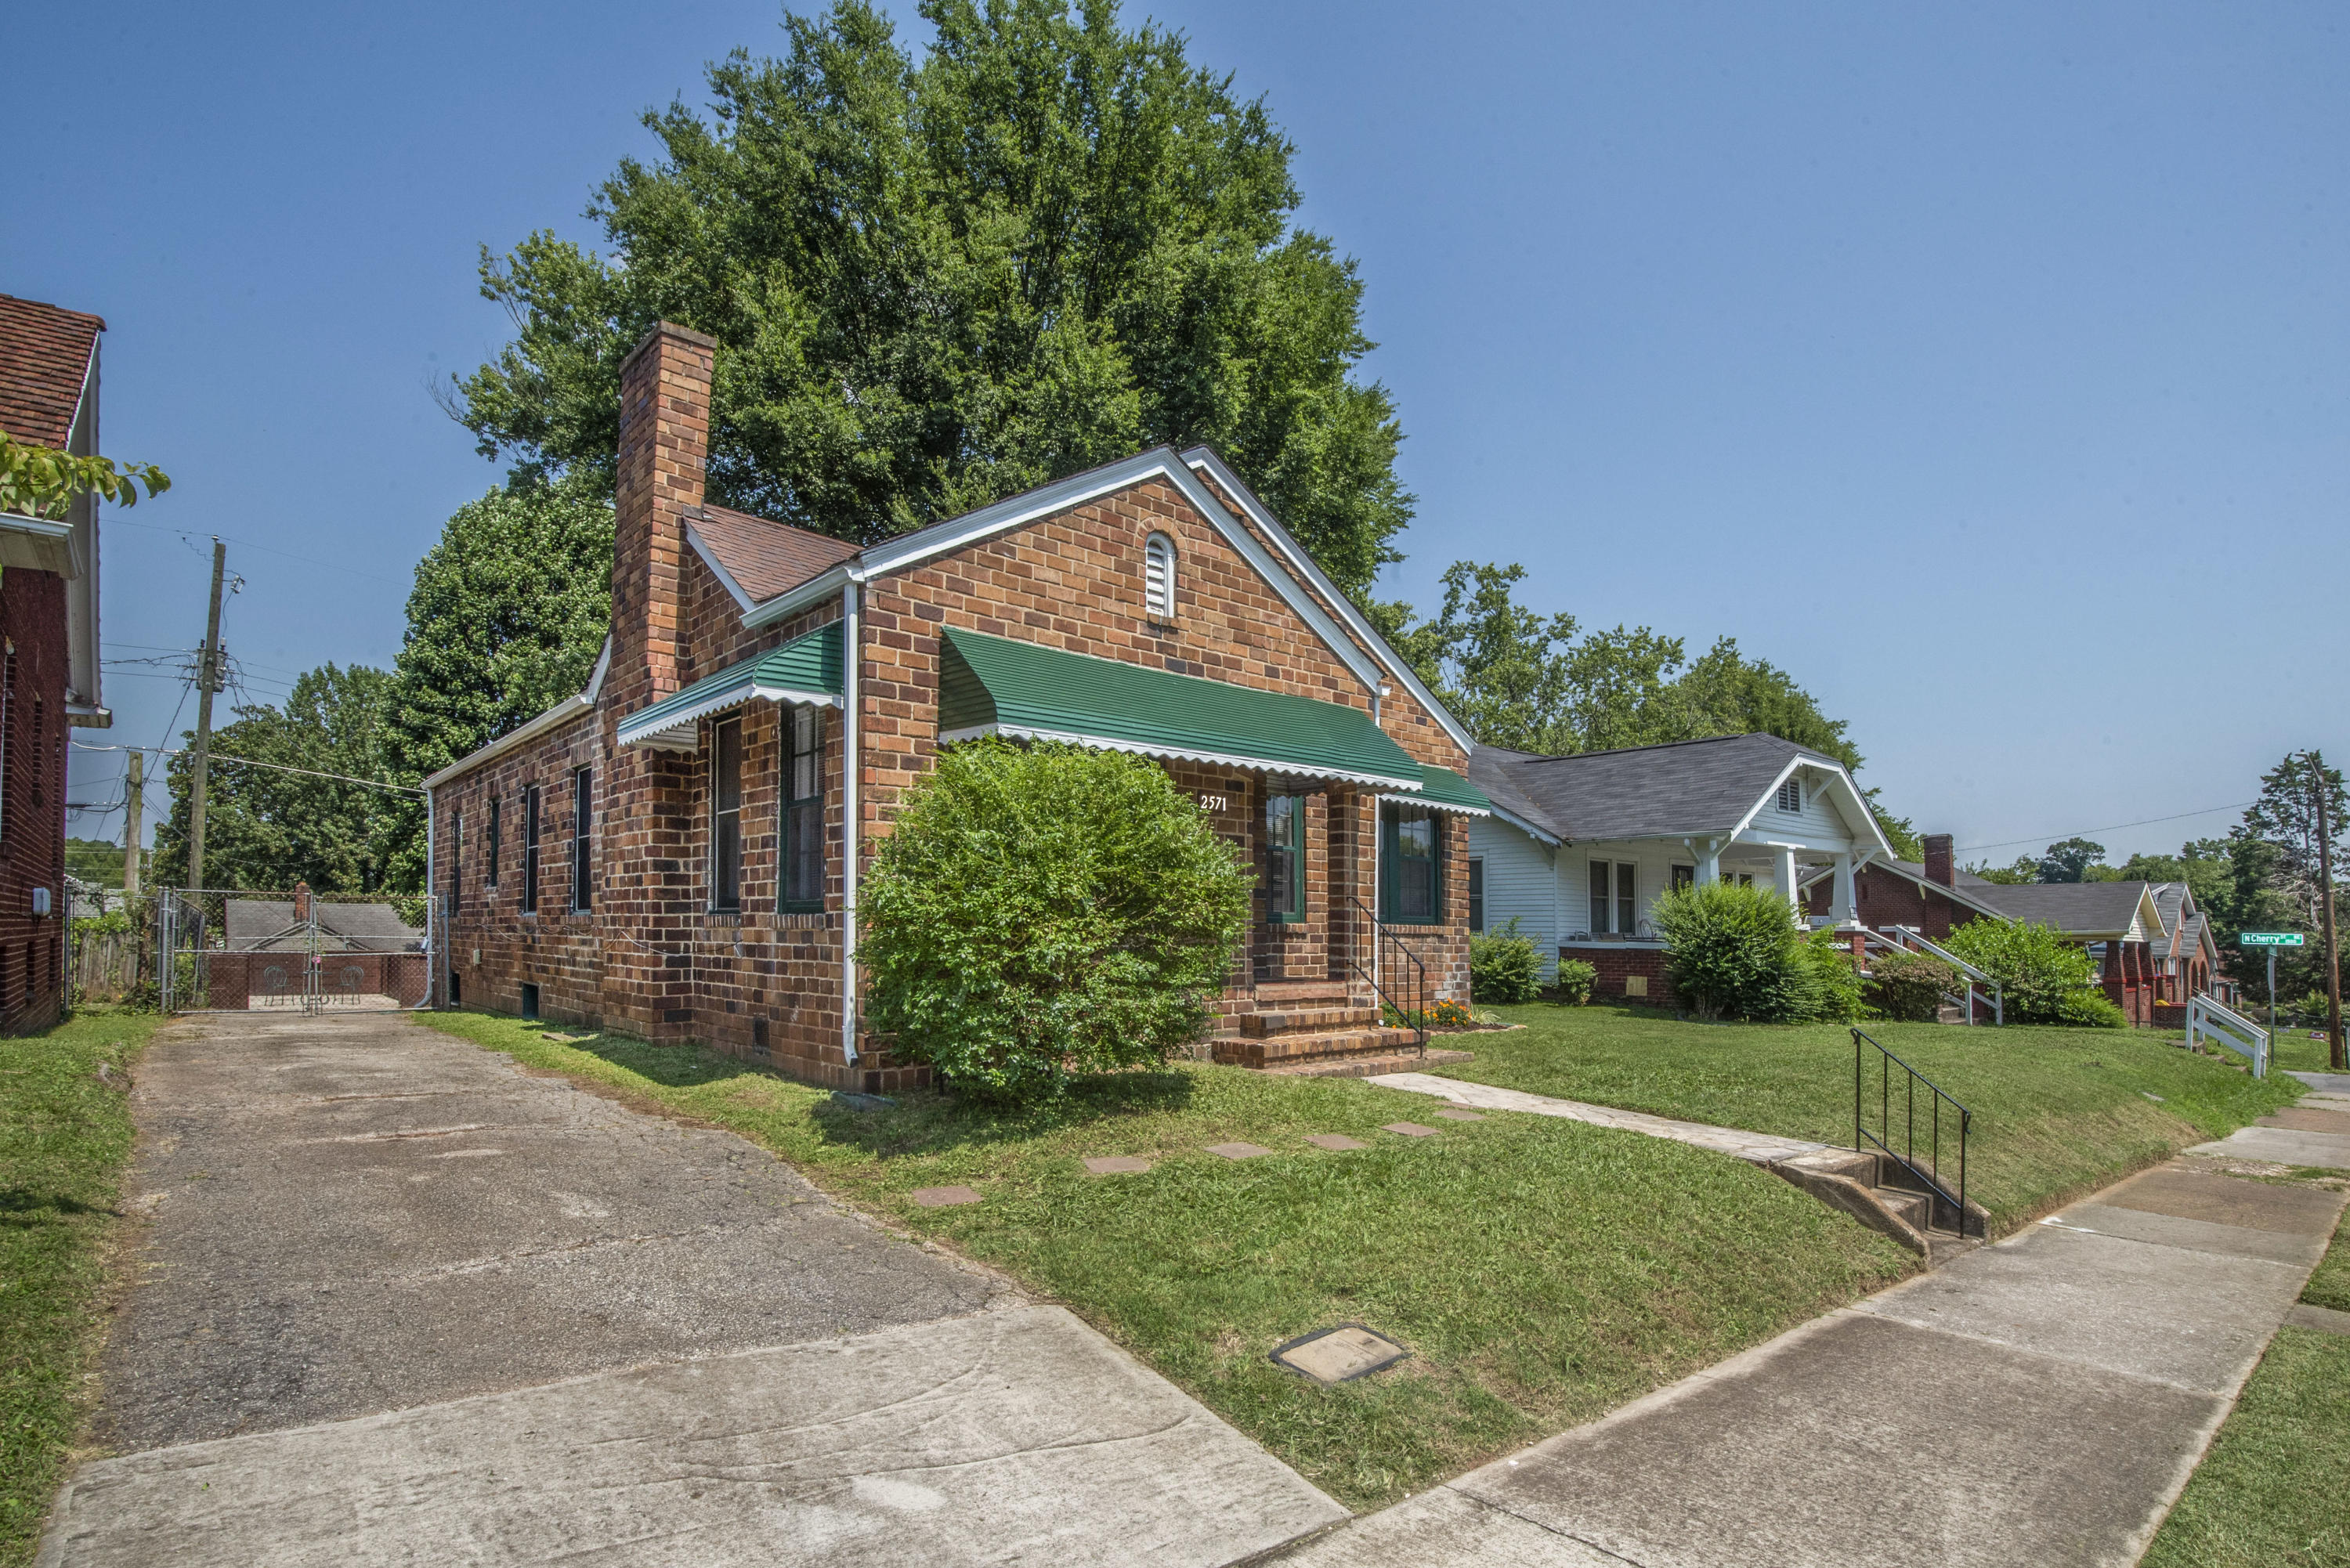 2571 Parkview Ave, Knoxville, Tennessee 37914, 3 Bedrooms Bedrooms, ,1 BathroomBathrooms,Single Family,For Sale,Parkview,1089308